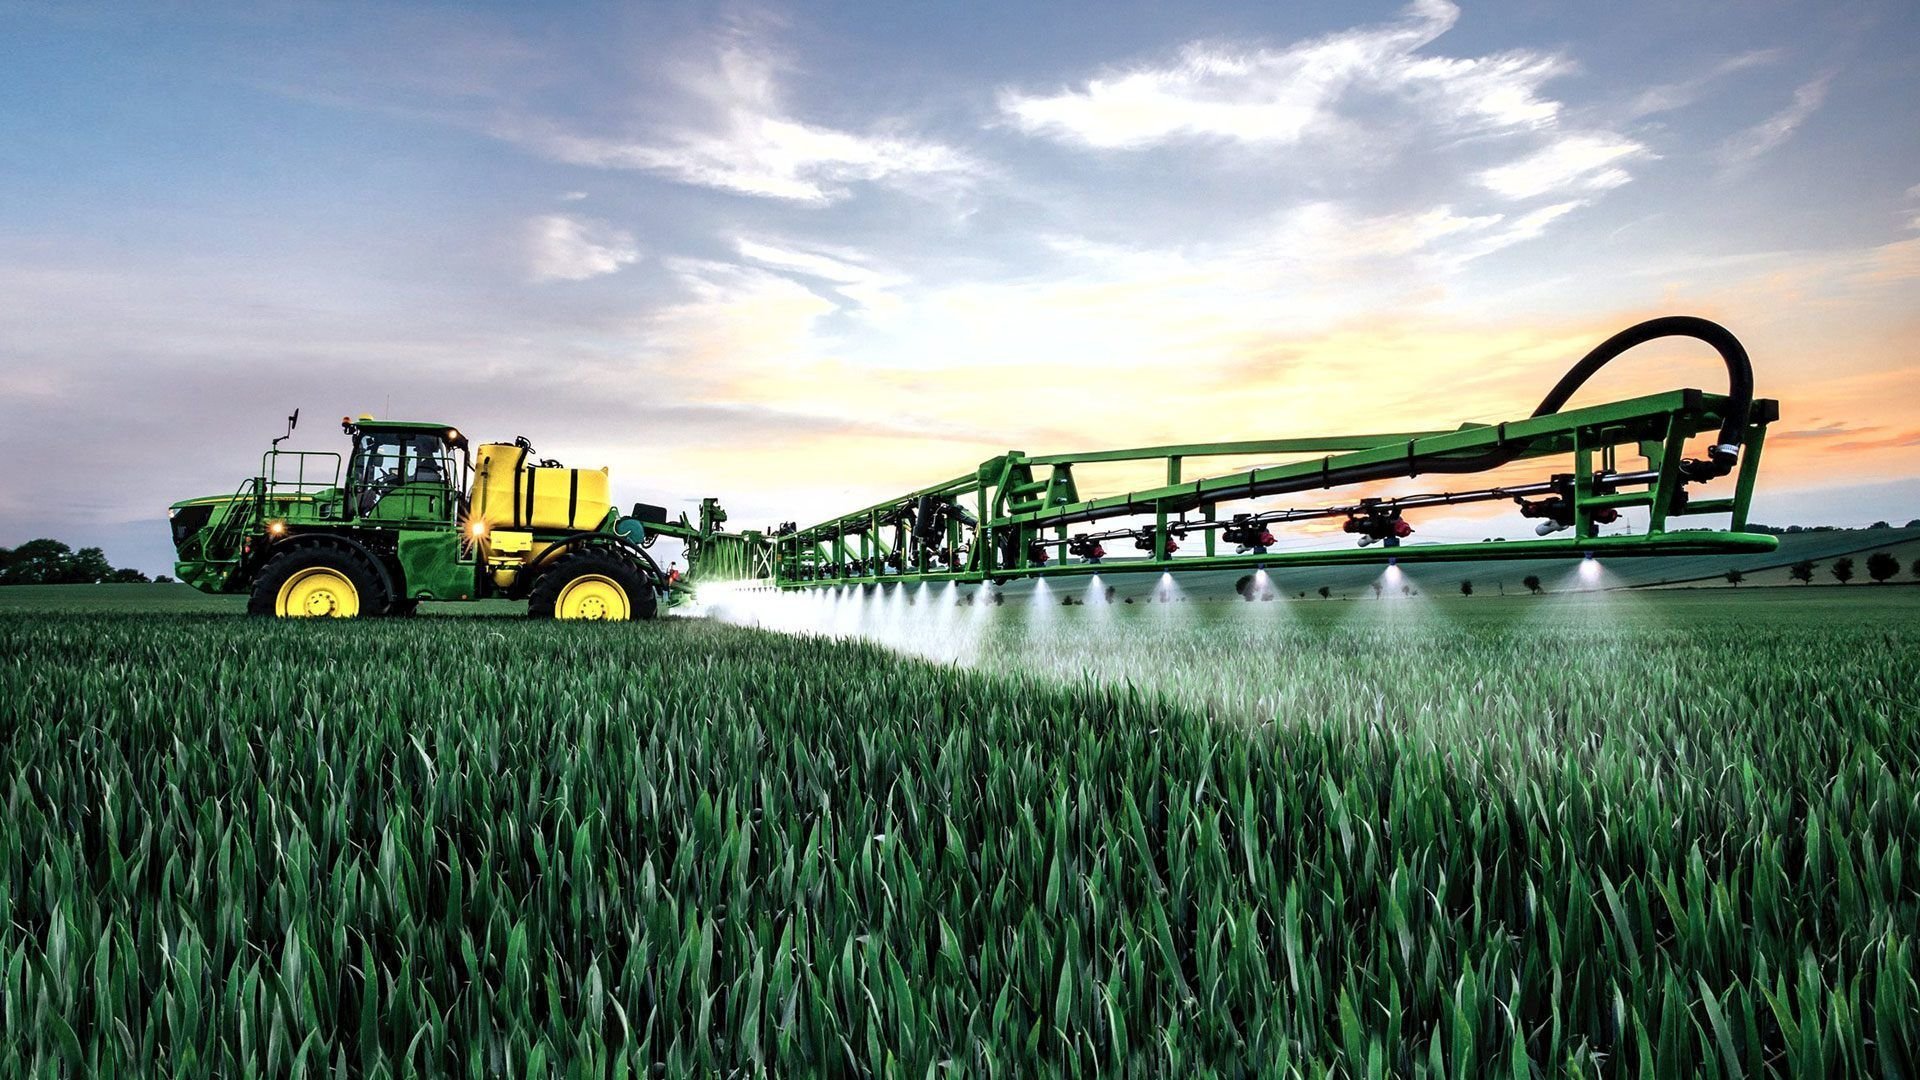 Tractor Implements Market With Images